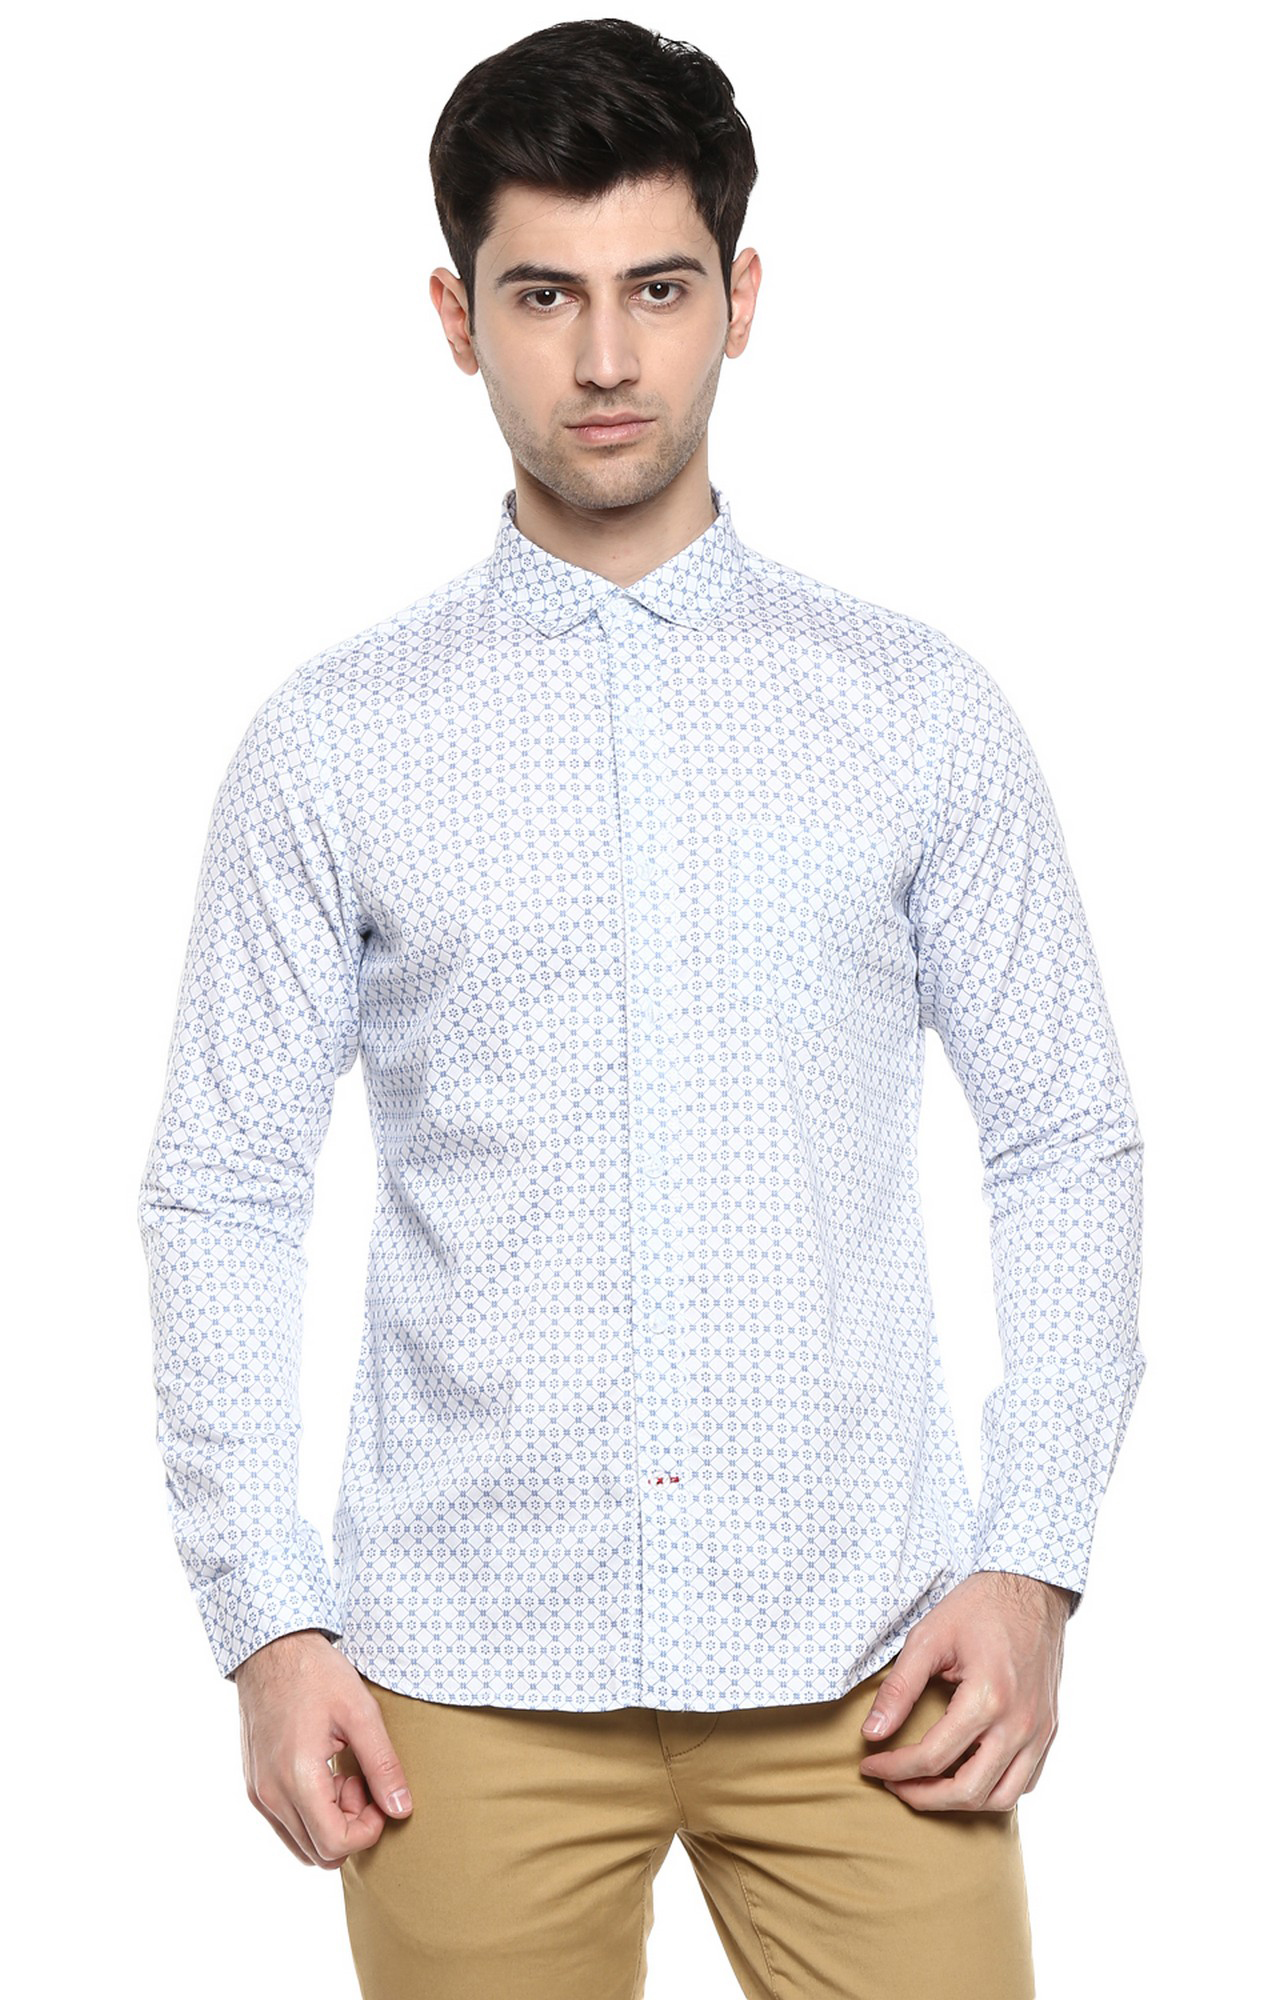 RED CHIEF   White & Navy Printed Casual Shirt